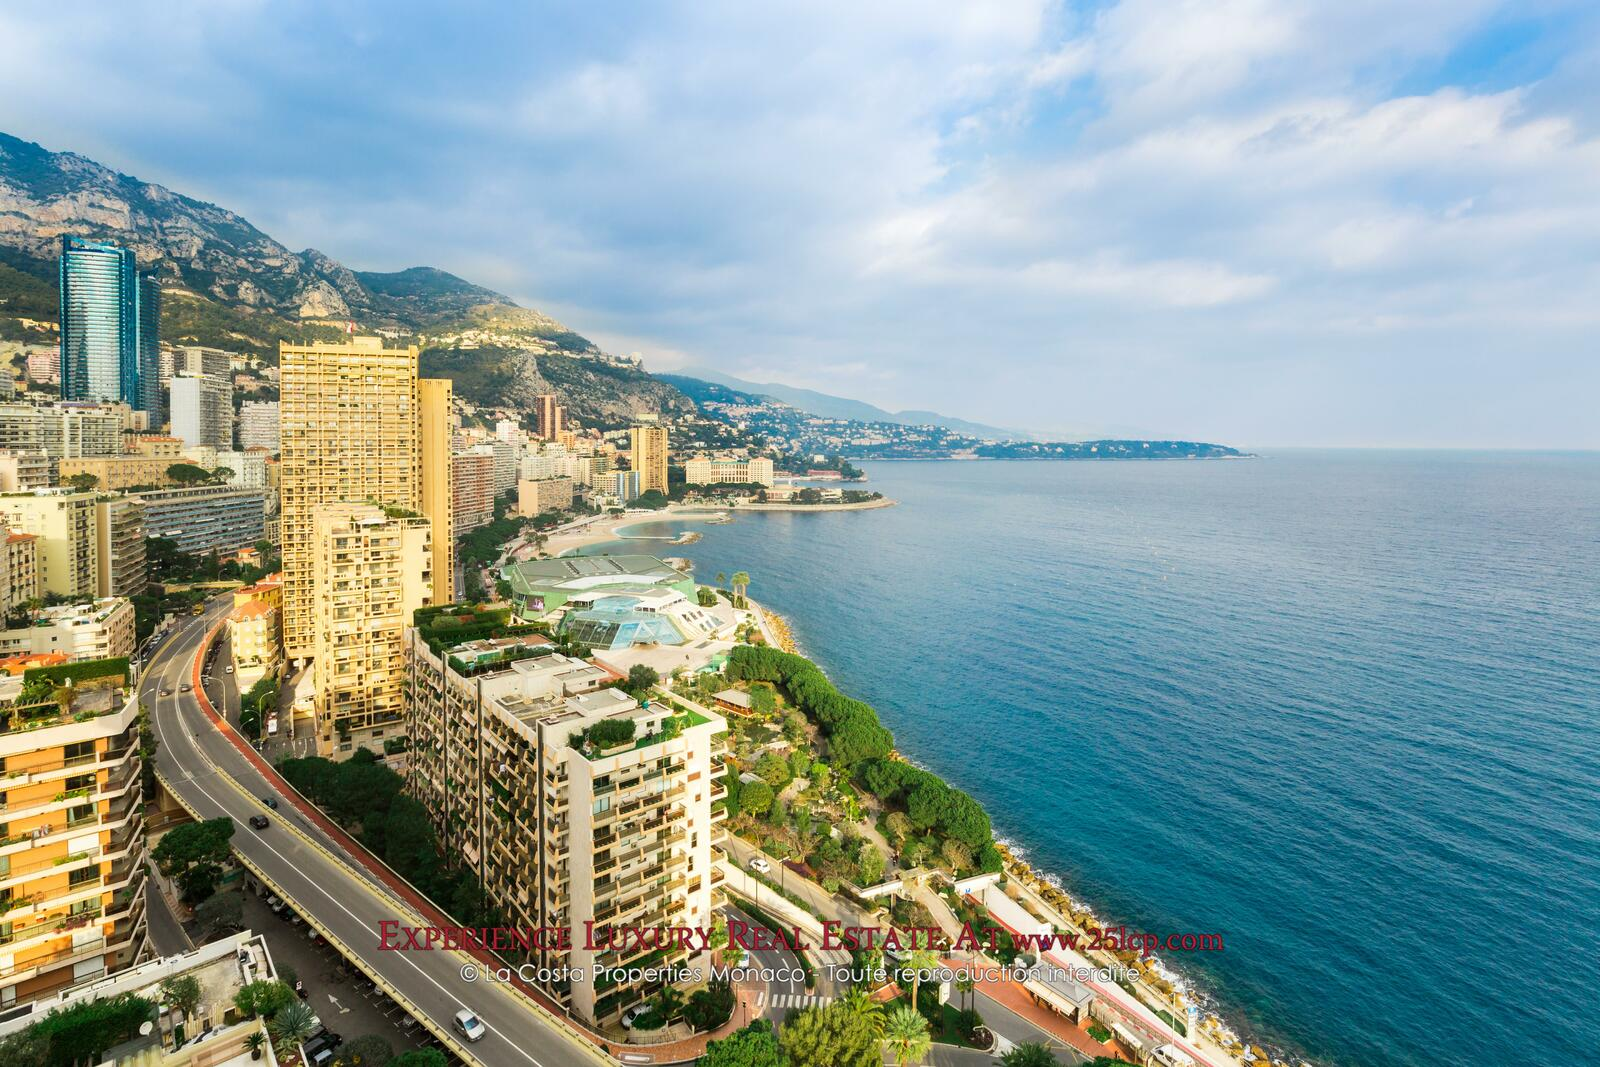 La Costa Properties Monaco : Between the Casino and the beach - The Mirabeau